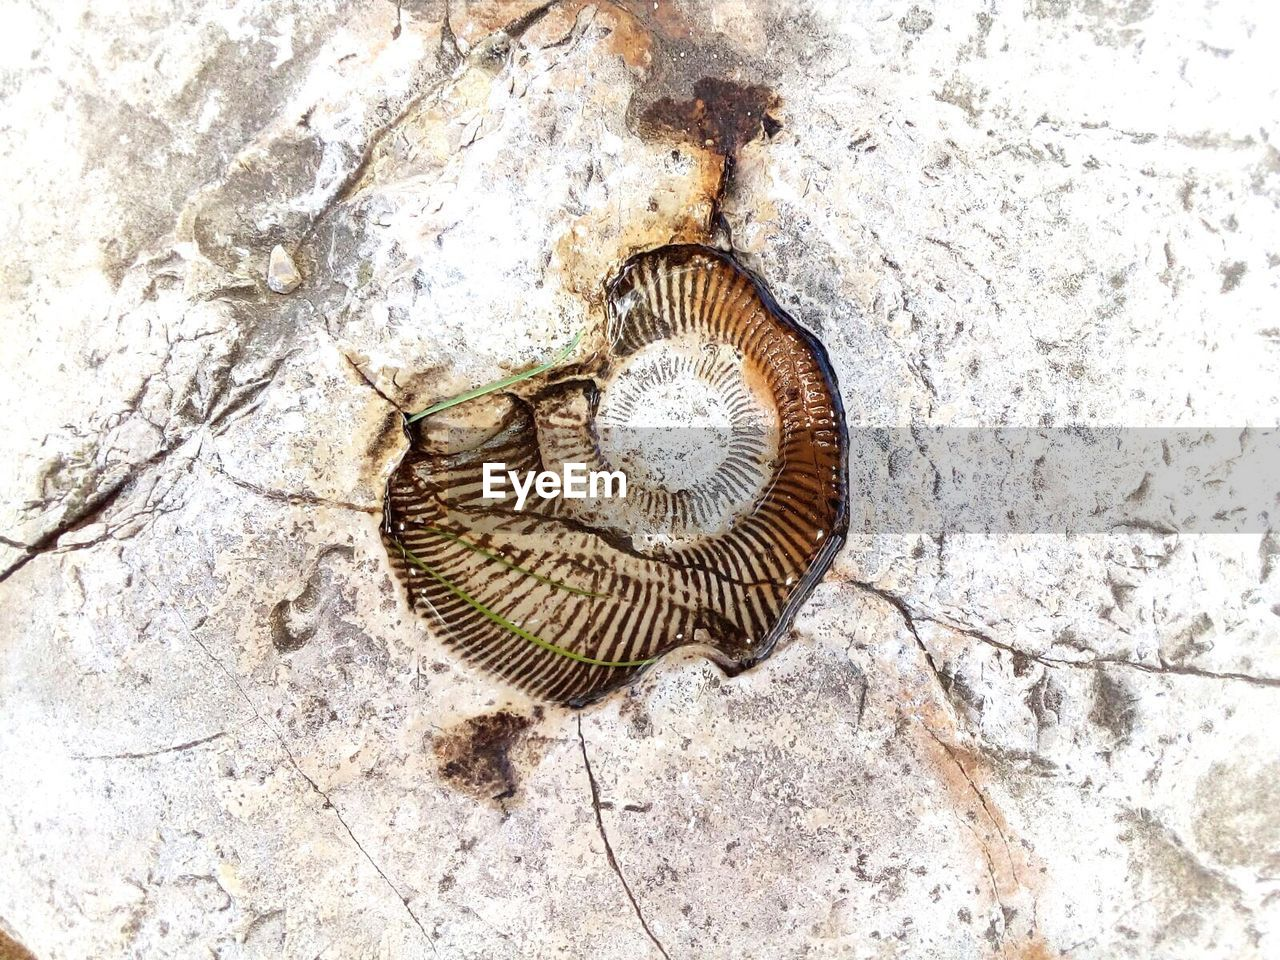 nature, snail, fossil, close-up, spiral, gastropod, no people, backgrounds, animal themes, outdoors, day, sea life